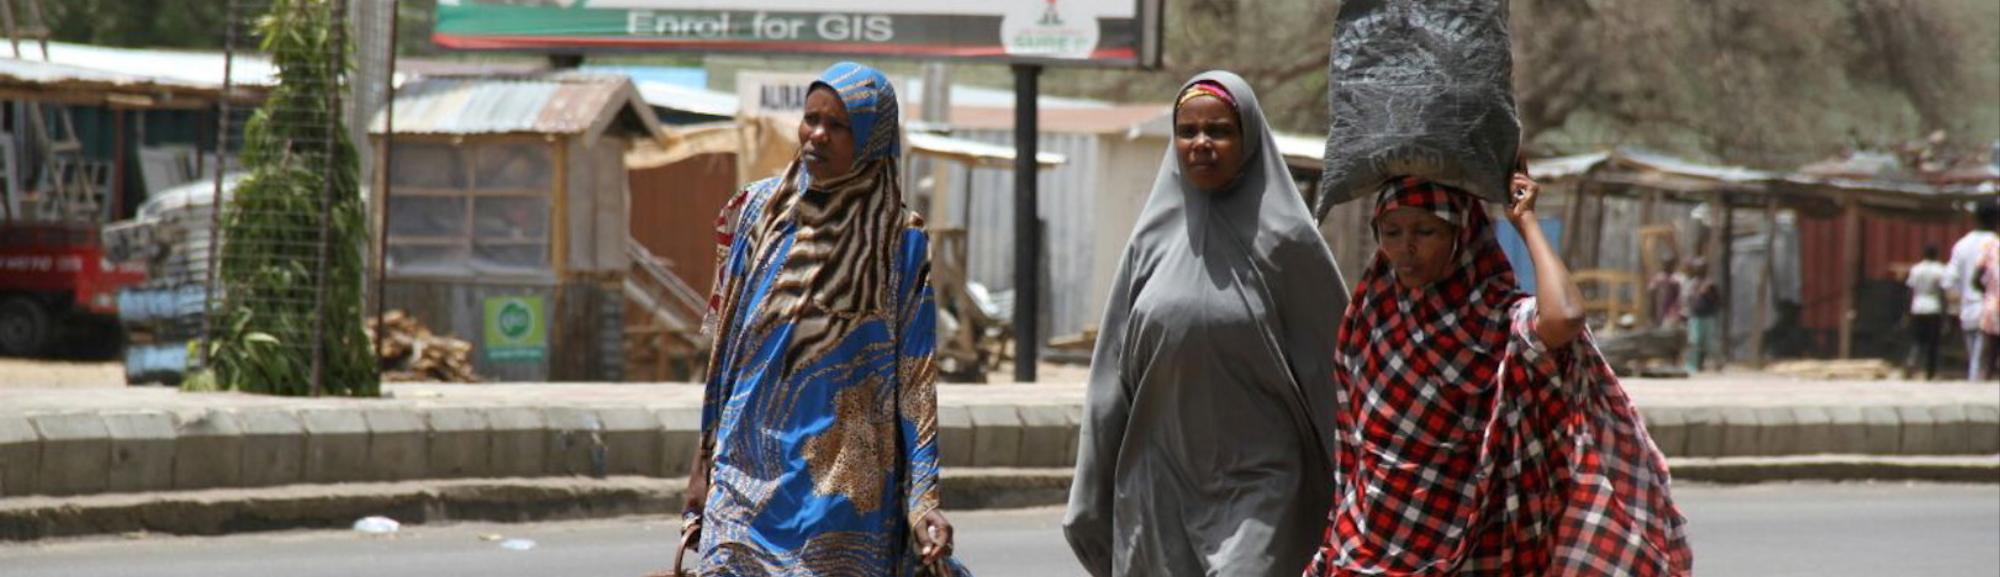 Women Carry Out Twin Suicide Bombing During Morning Prayers in Northeast Nigeria